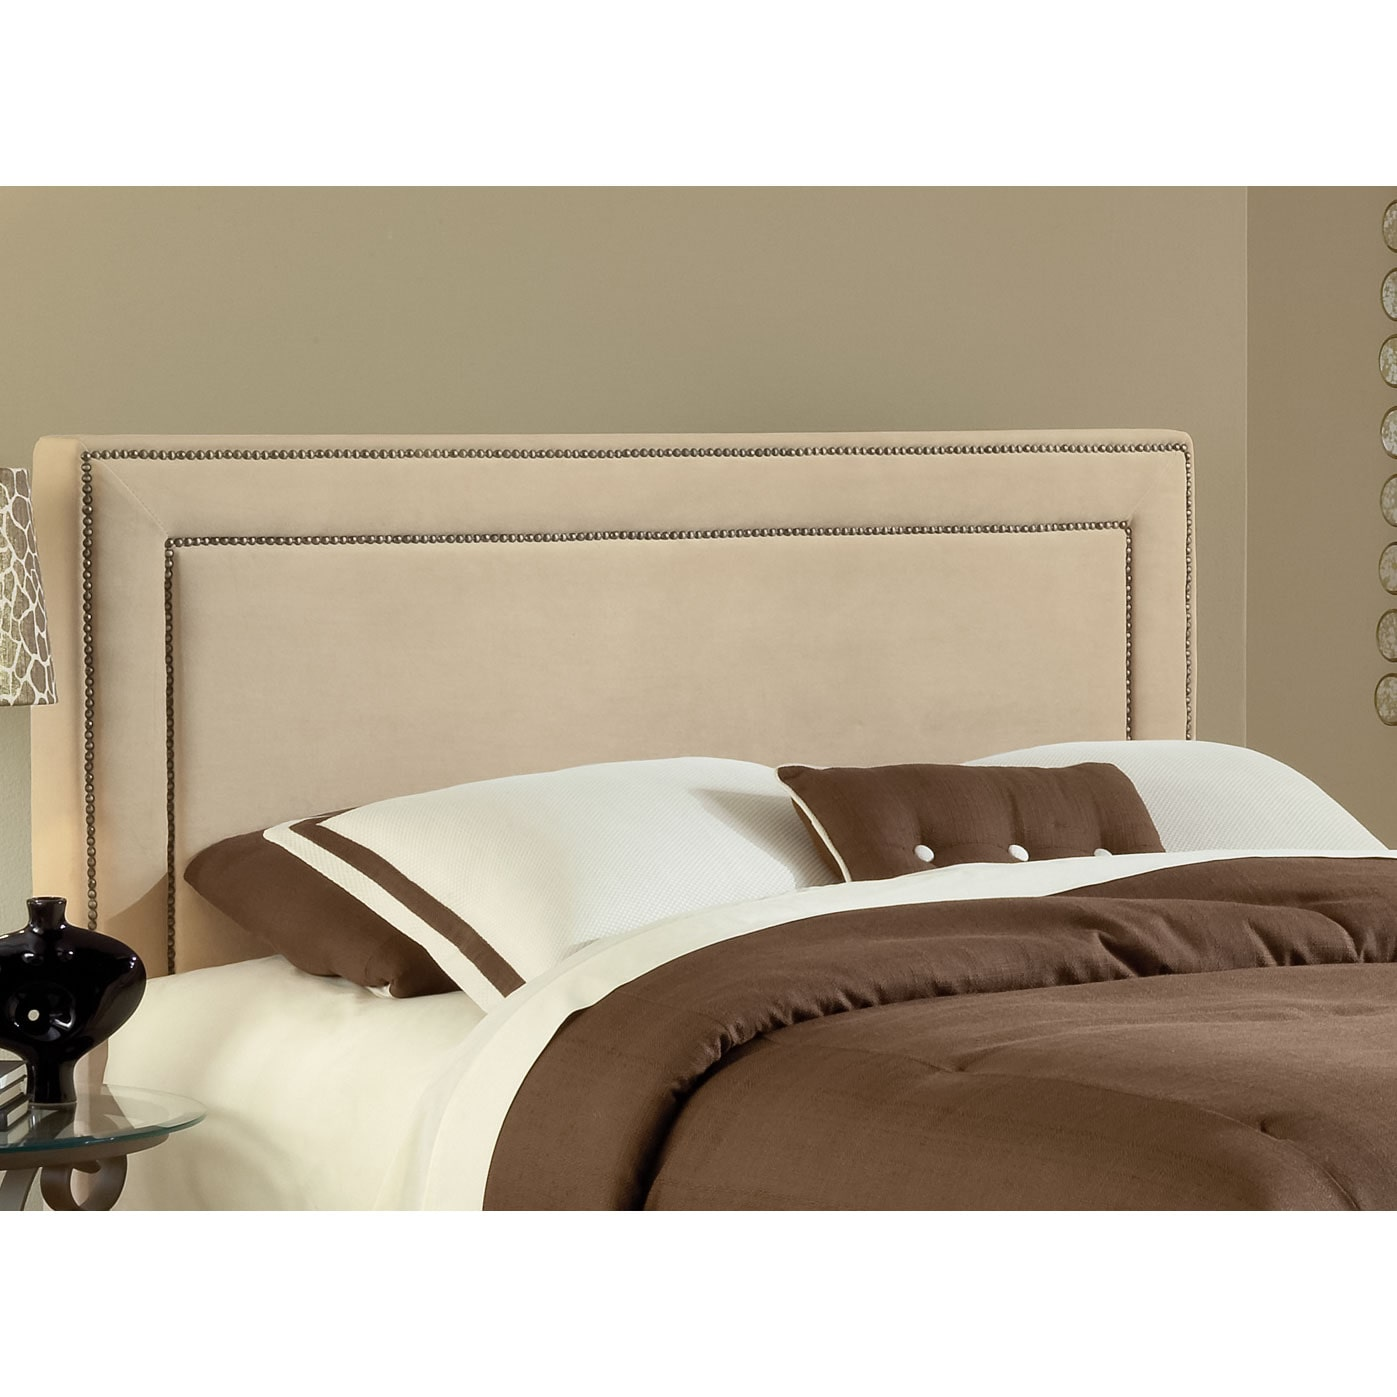 Amber Queen Upholstered Headboard - Beige